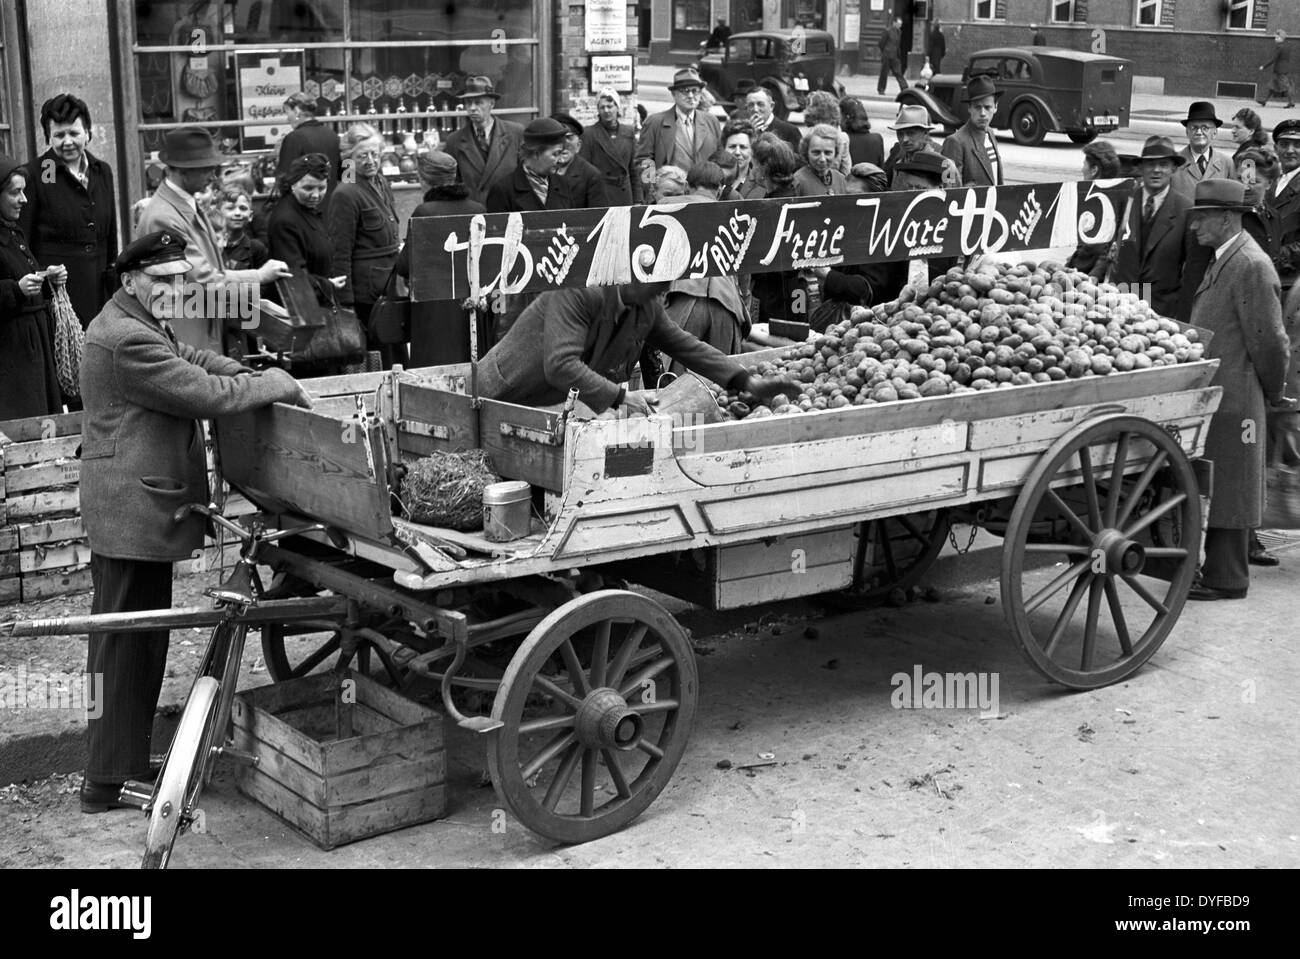 Berlins are stading in line at a selling point for potatoes and peas which can be bought without food stamps, in 1949. - Stock Image